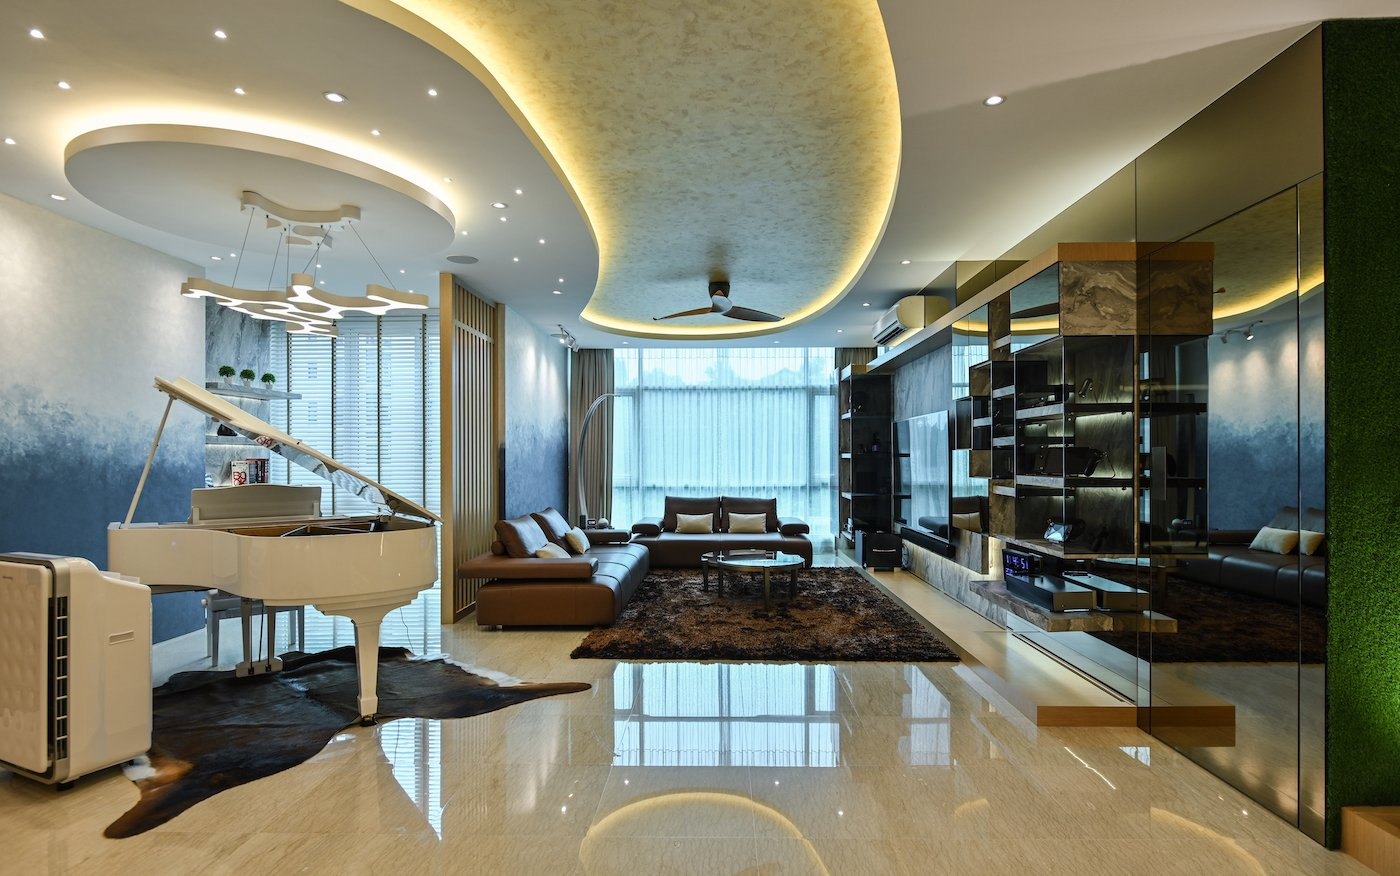 Professional interior design agency in Malaysia